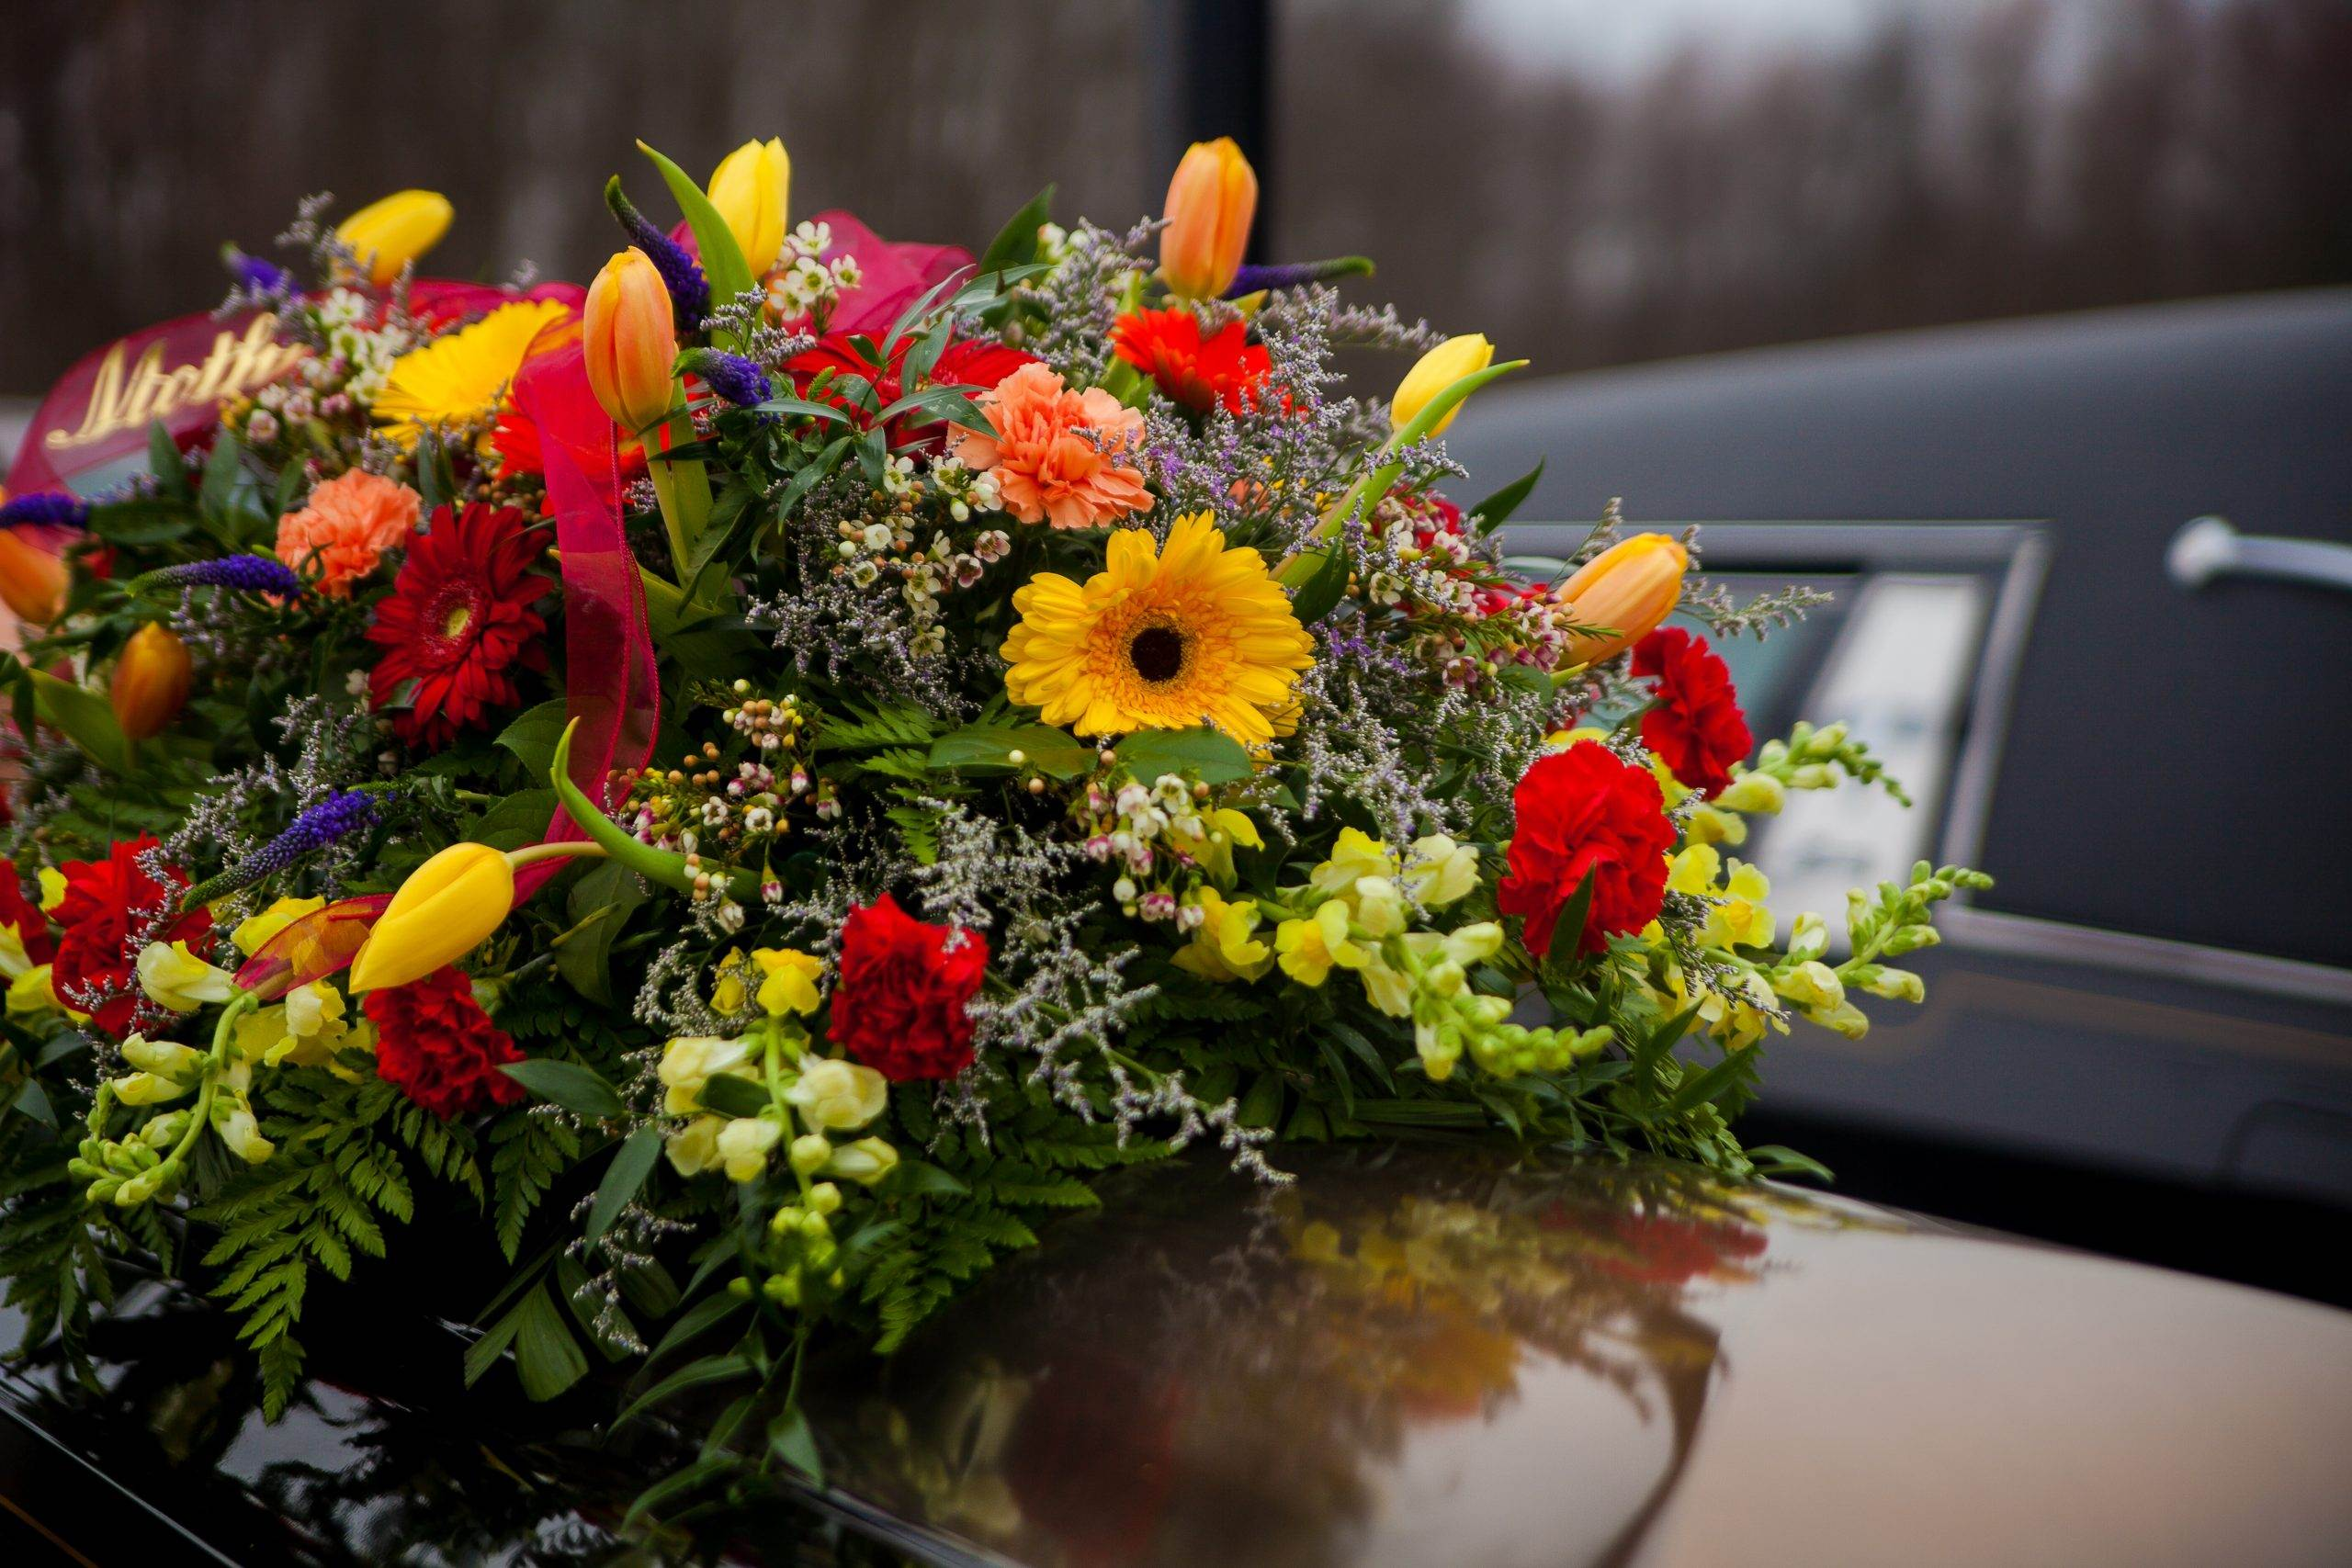 Funeral reception gives people an opportunity to spend some time together